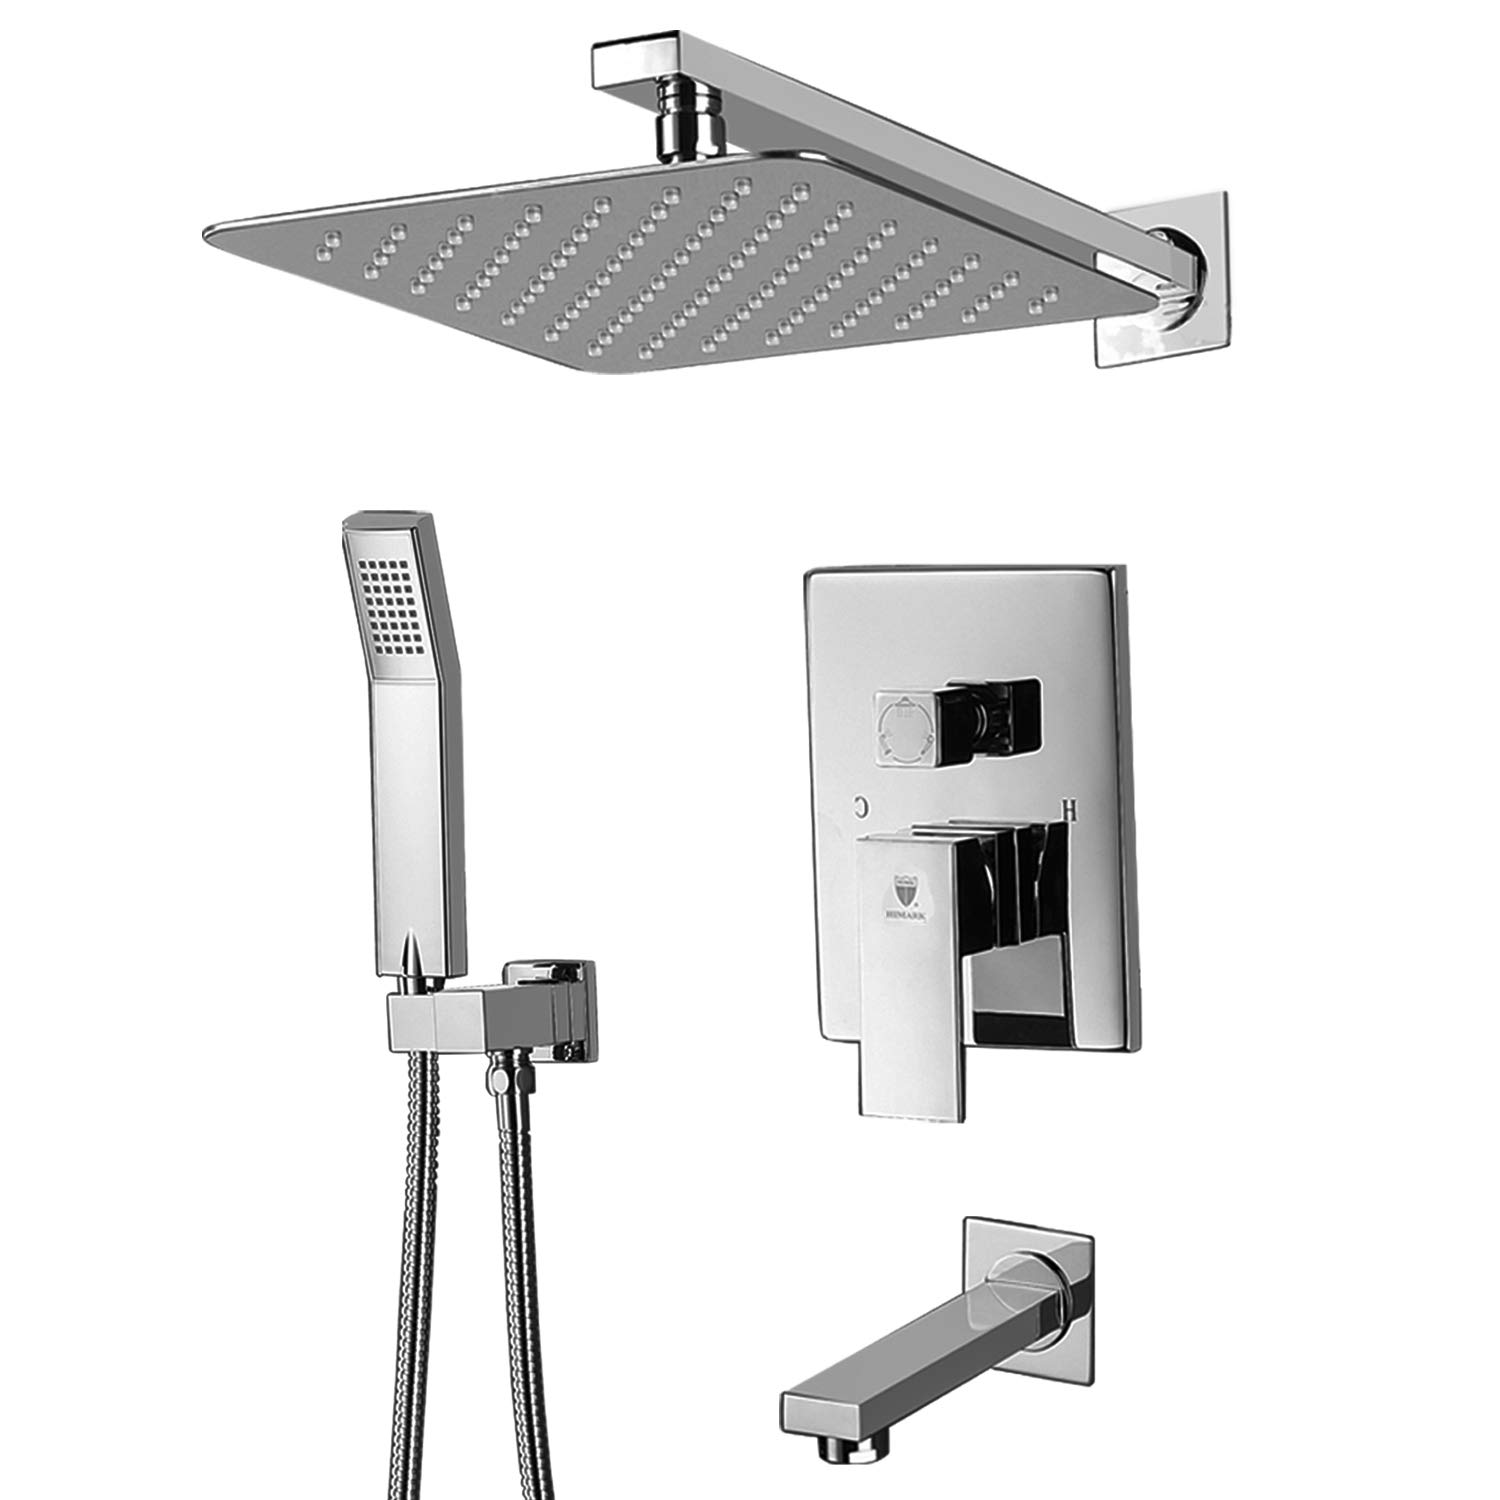 Shower System,Shower Faucet Set With Tub Spout For Bathroom And 10 Inch  Square Rain Shower Head Wall Mounted Shower Set (Contain Shower Faucet  Rough In ...